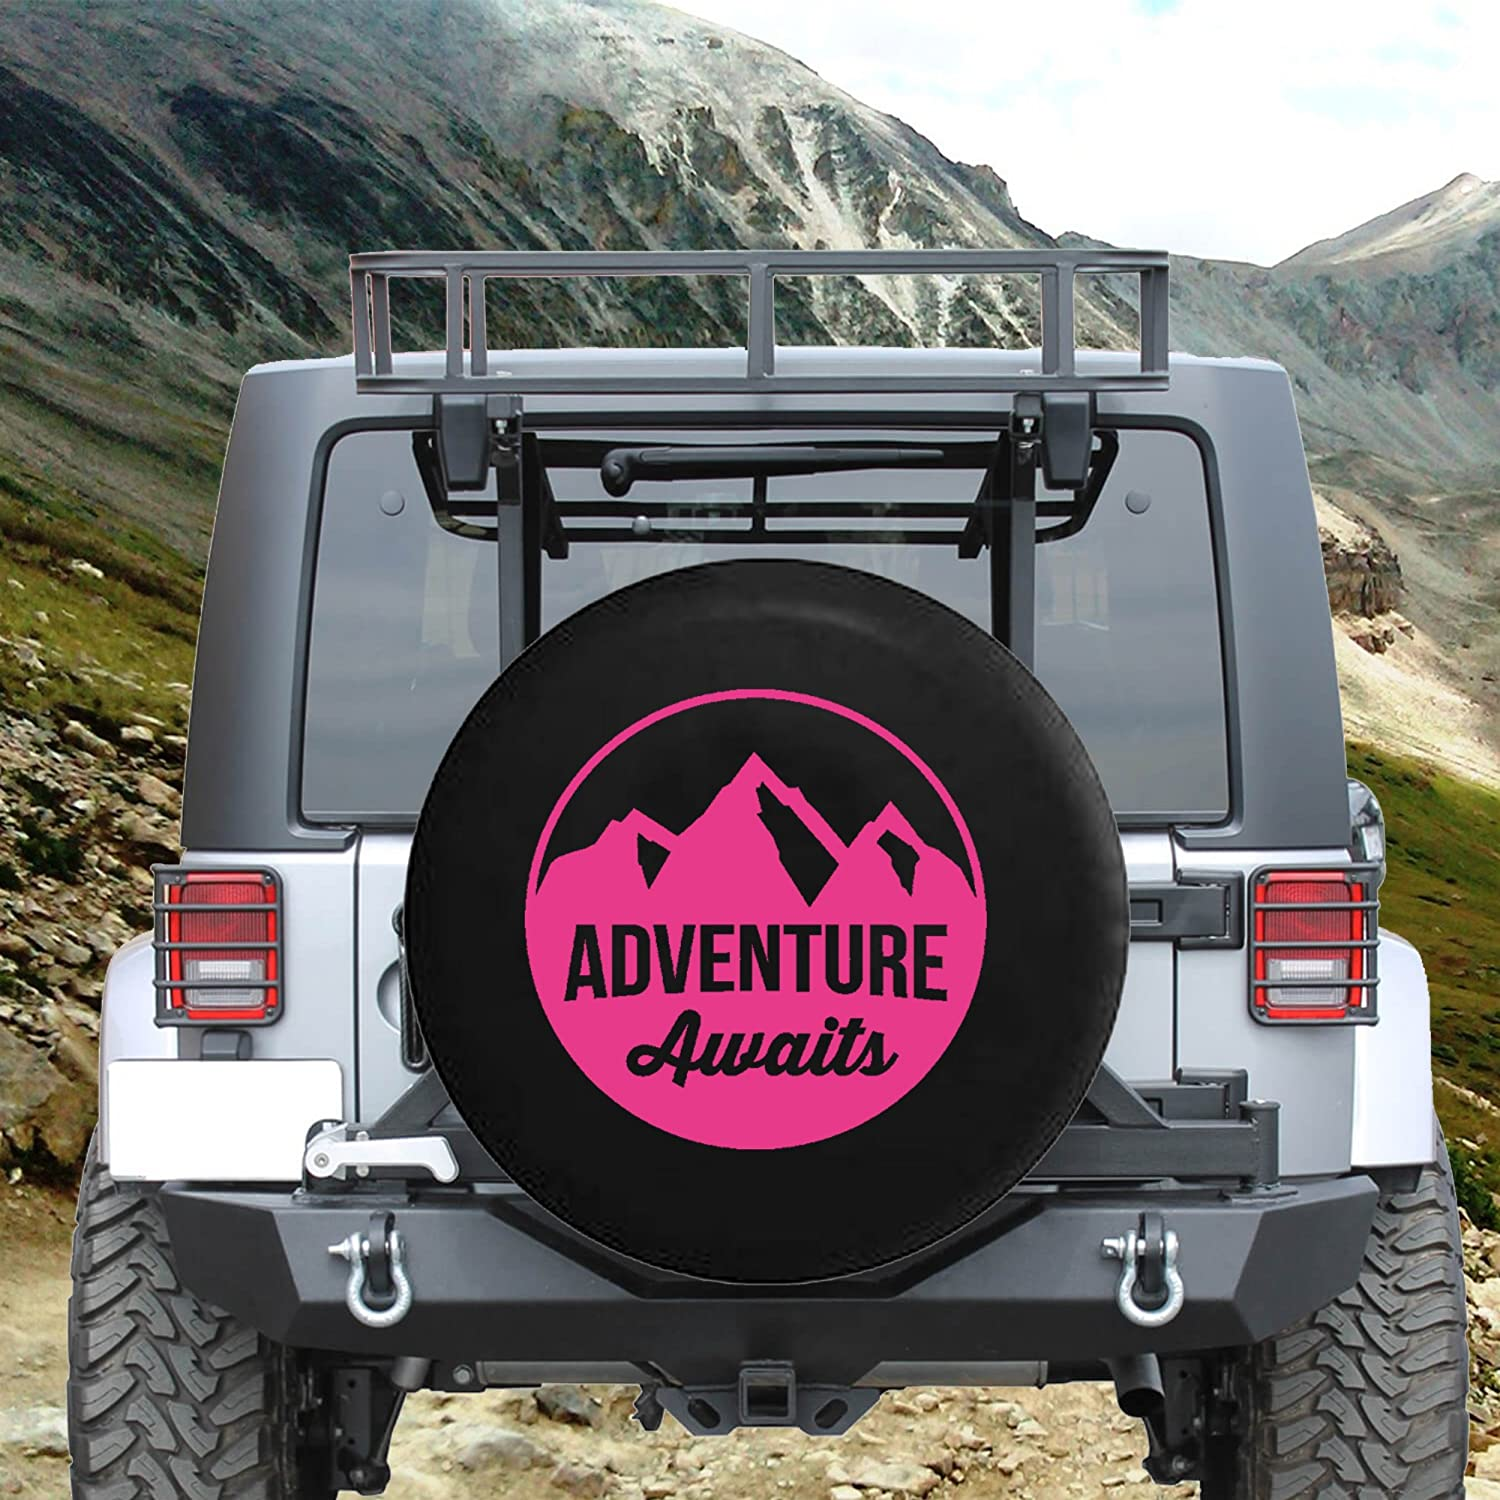 Adventure Awaits Mountain View Spare Tire Cover fits SUV Camper RV Accessories Gray Ink 29 in